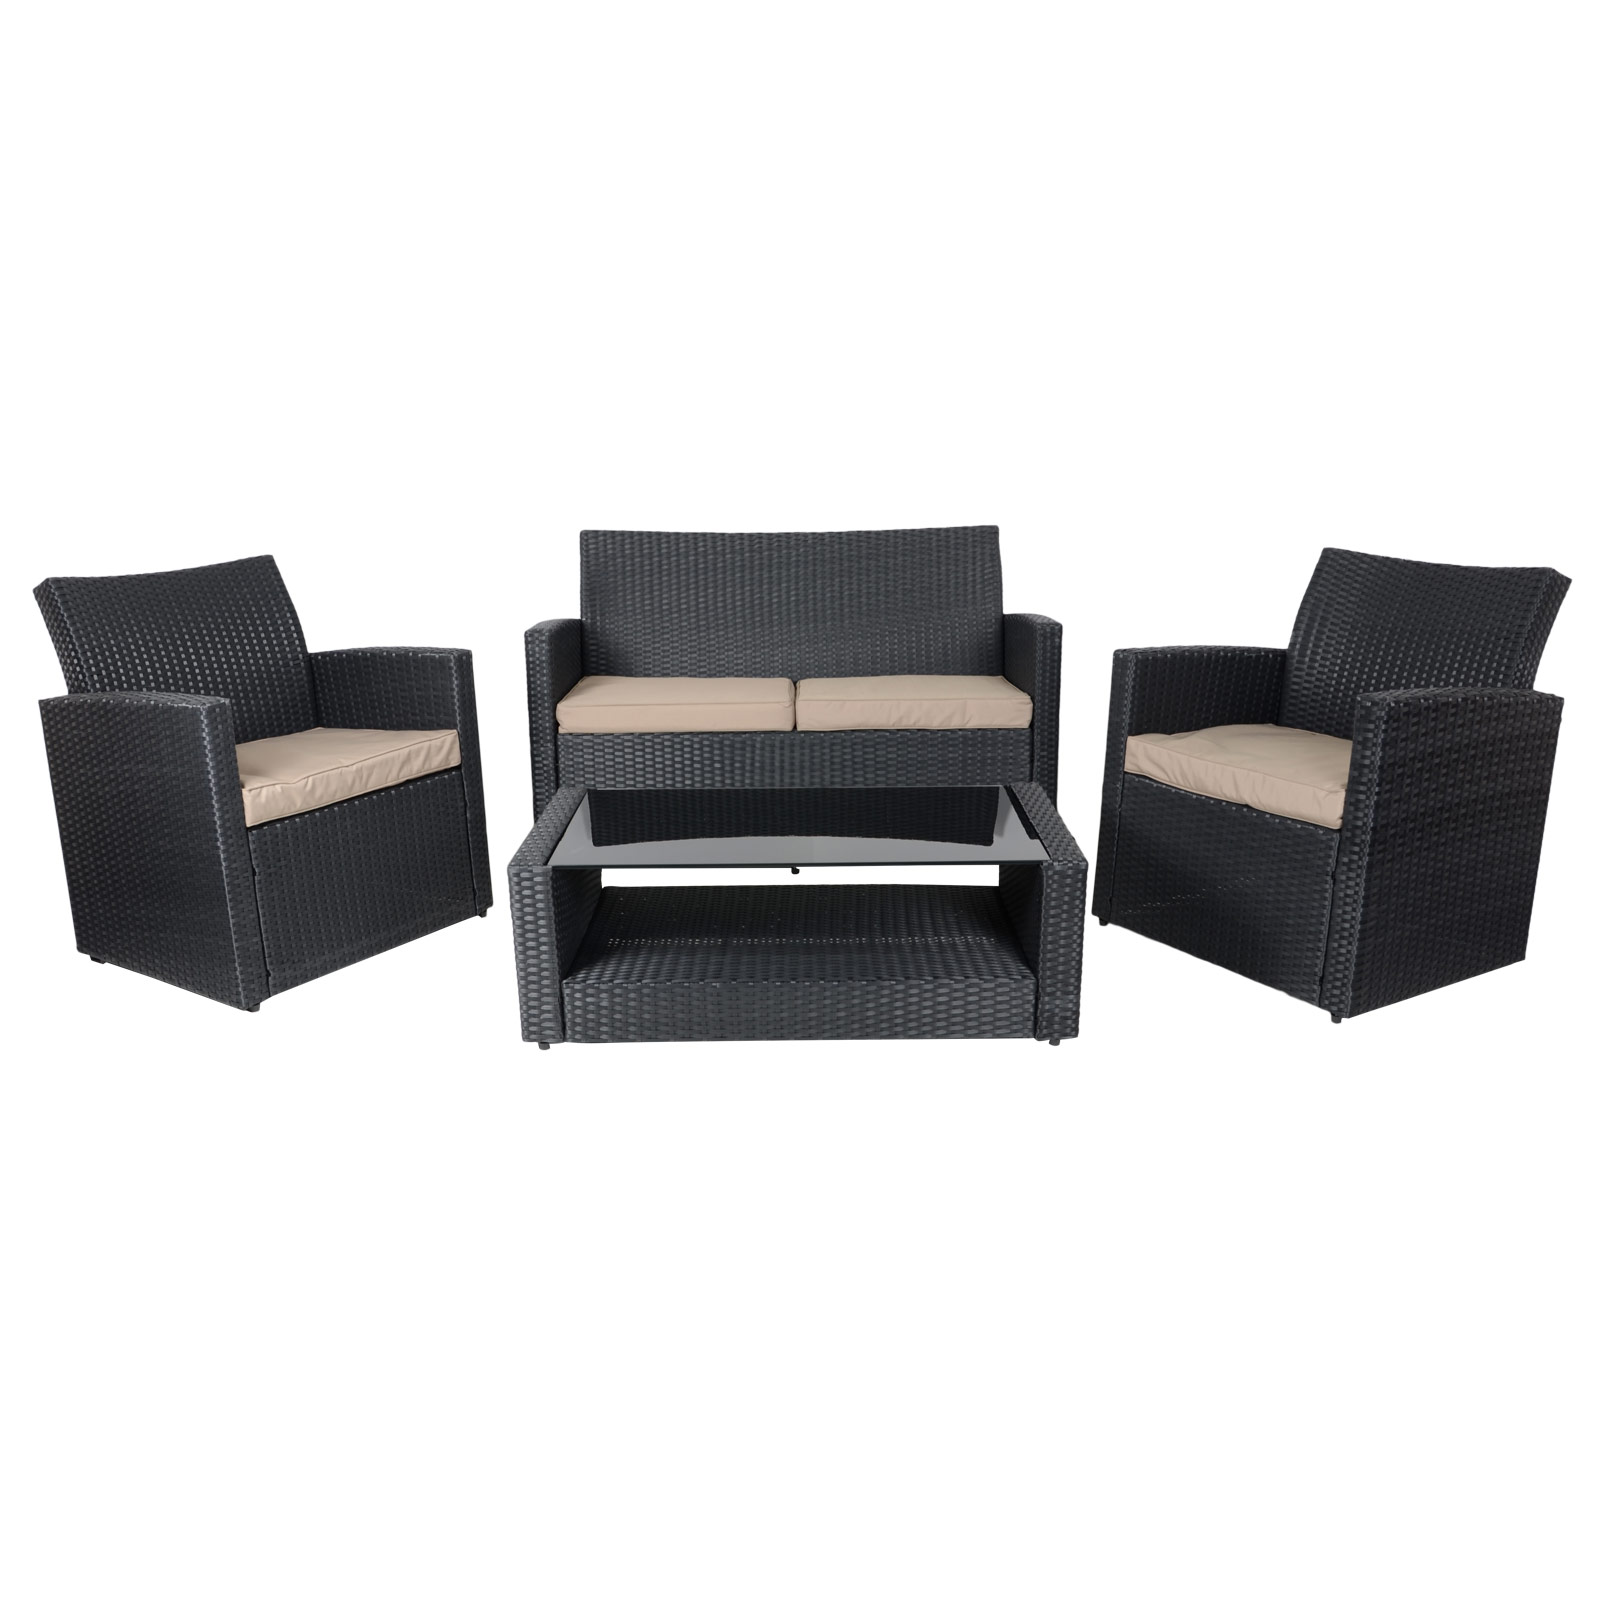 Tuscany Black Sofa Set Table Chairs Rattan Wicker Garden Conservatory Furniture